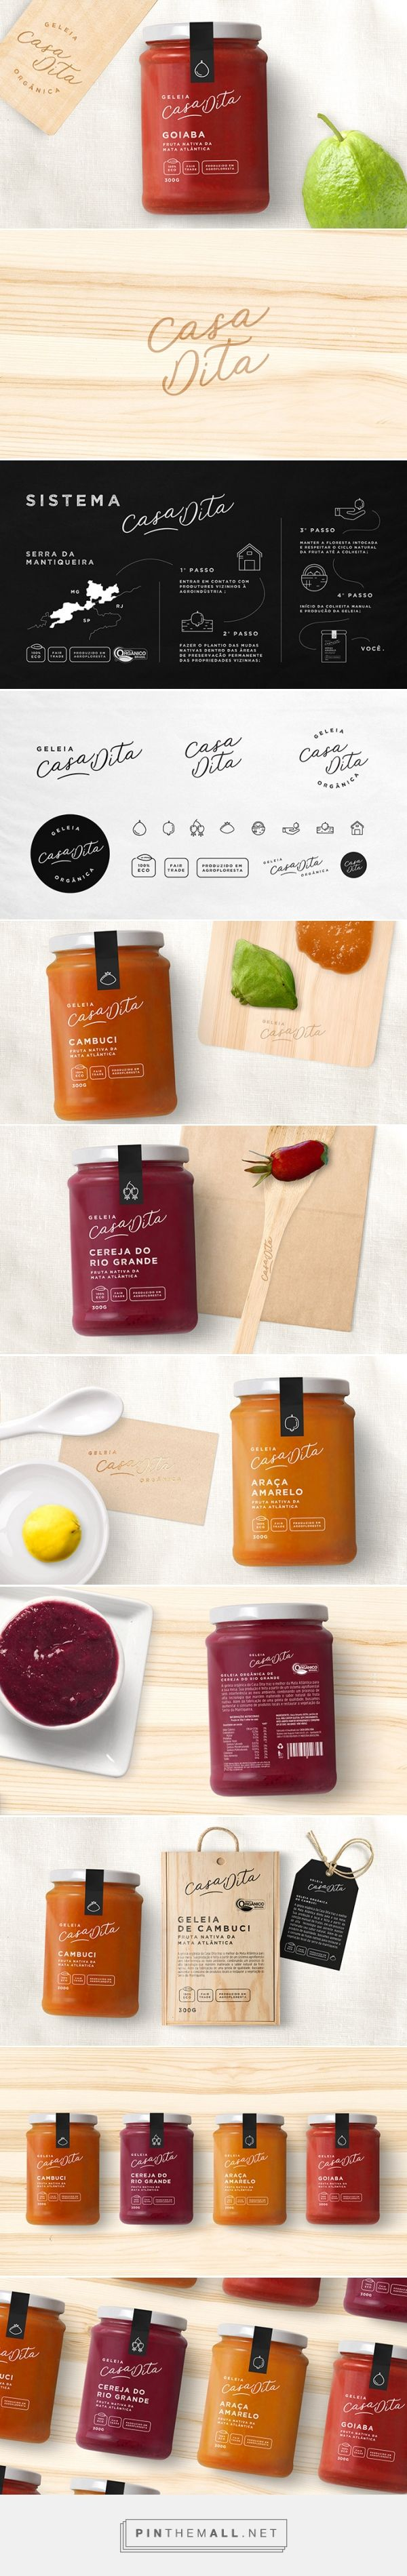 Casa Dita jam by Bea Janoni. Source: Daily Package Design Inspiration. Pin curated by #SFields99 #packaging #design #inspiration #ideas #branding #jar #jam